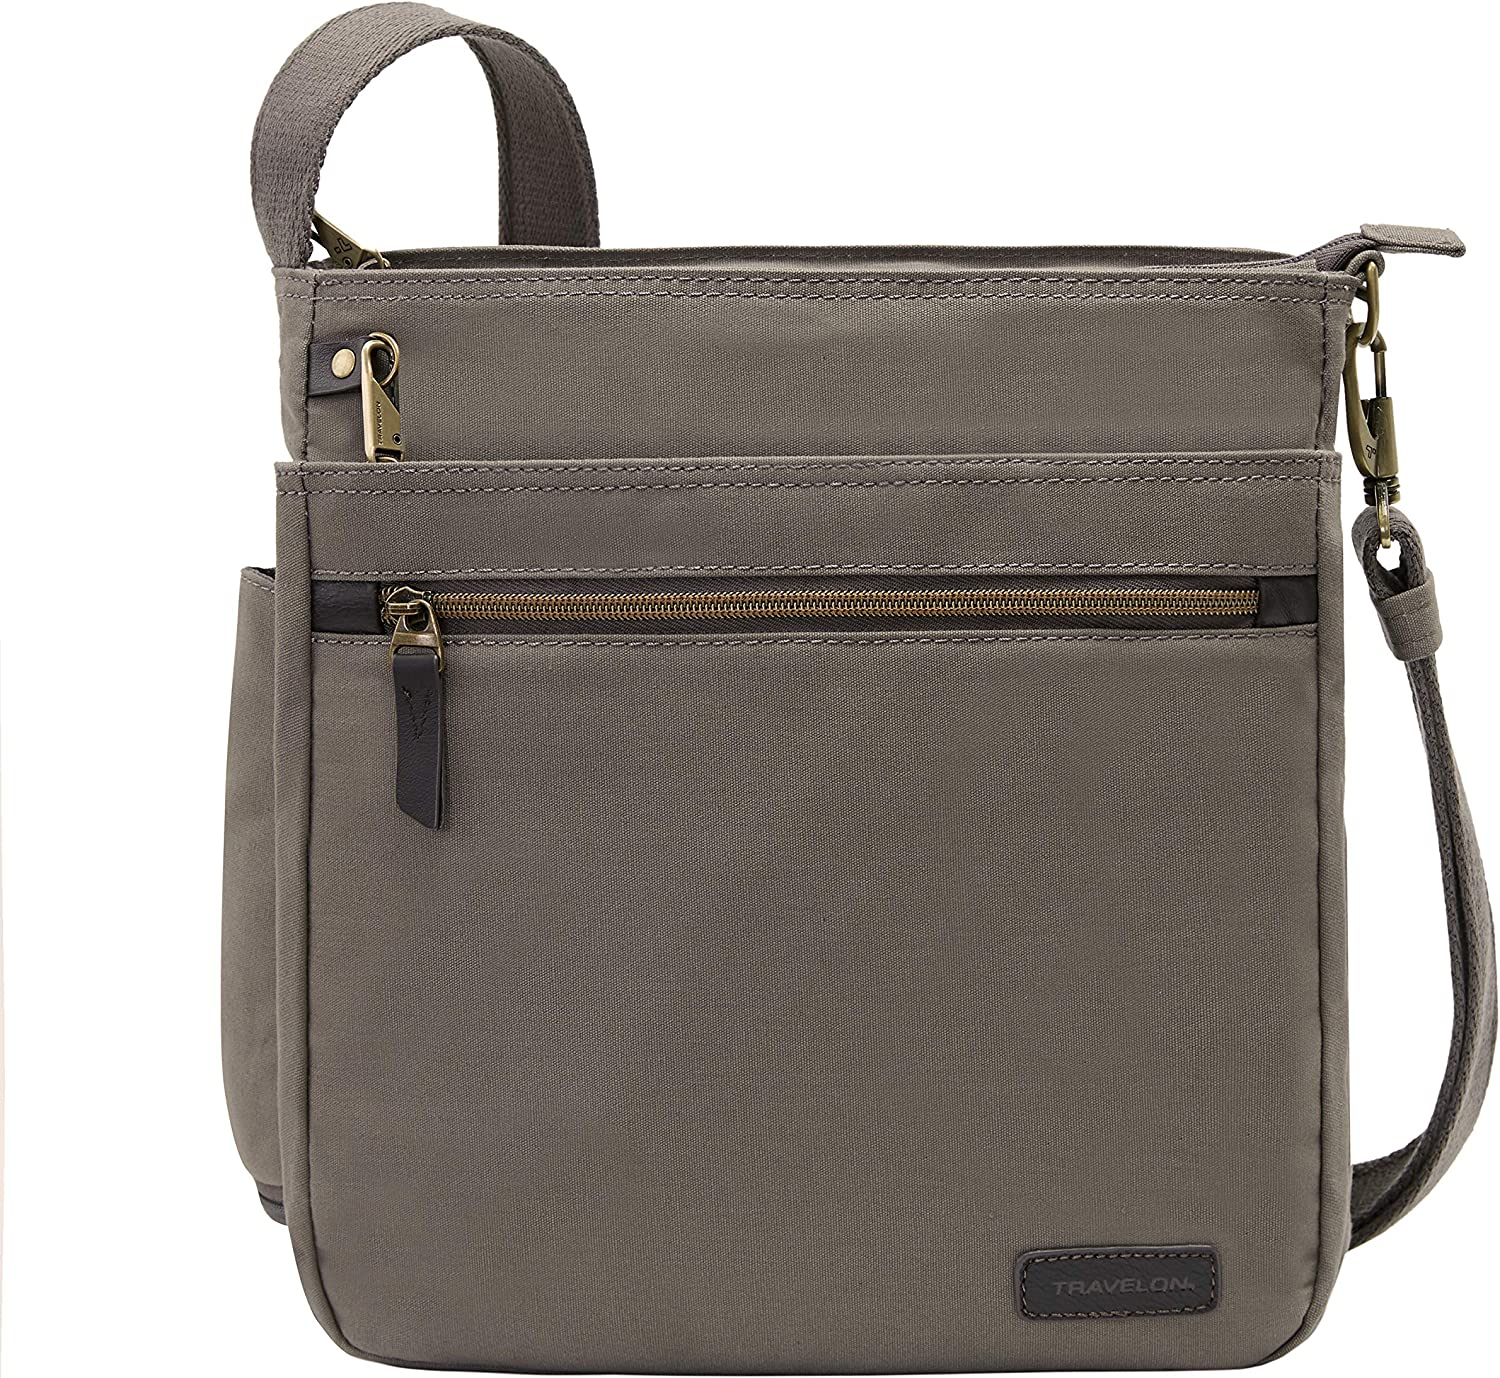 Travelon Anti-Theft Courier N s Max 78% OFF Crossbody Super beauty product restock quality top Bag Gray Stone